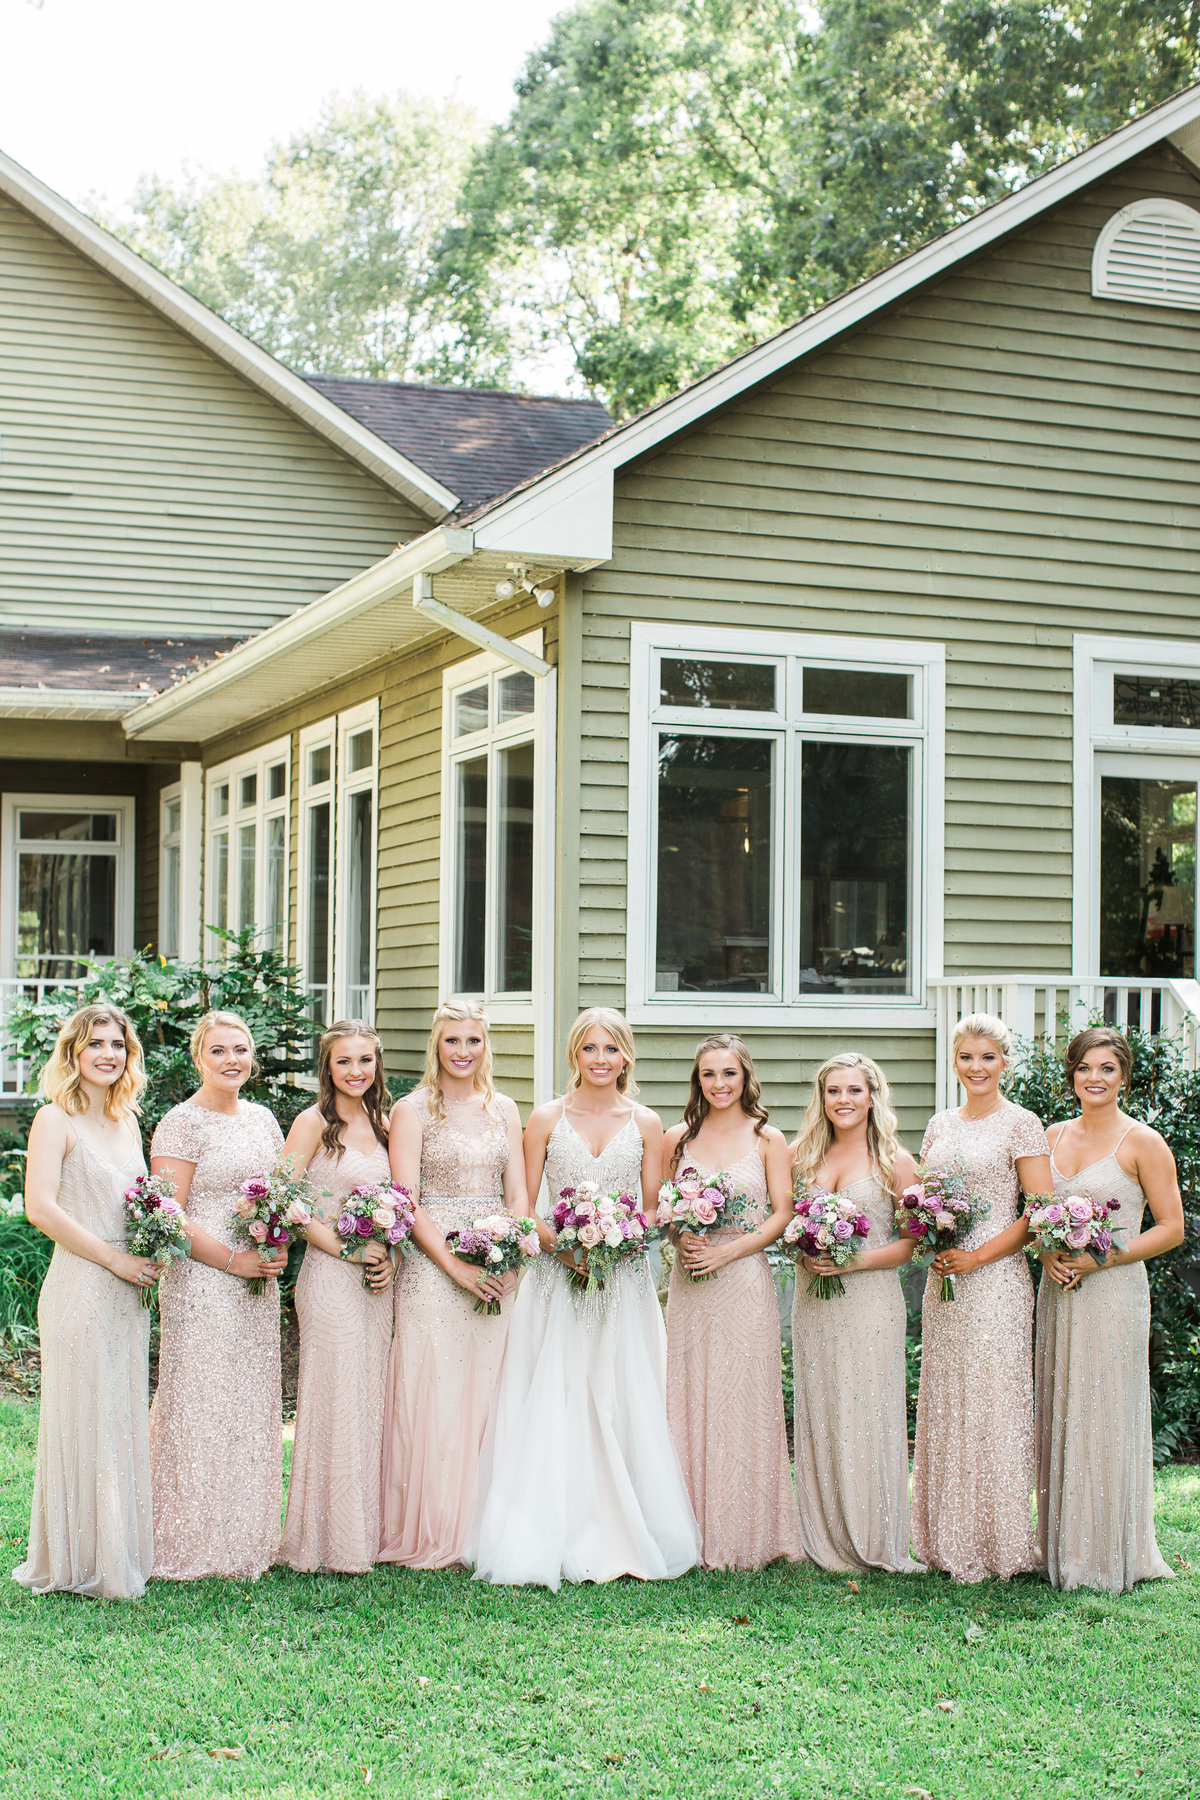 Eden & Will Wedding_Lindsay Ott Photography_Mississippi Wedding Photographer87